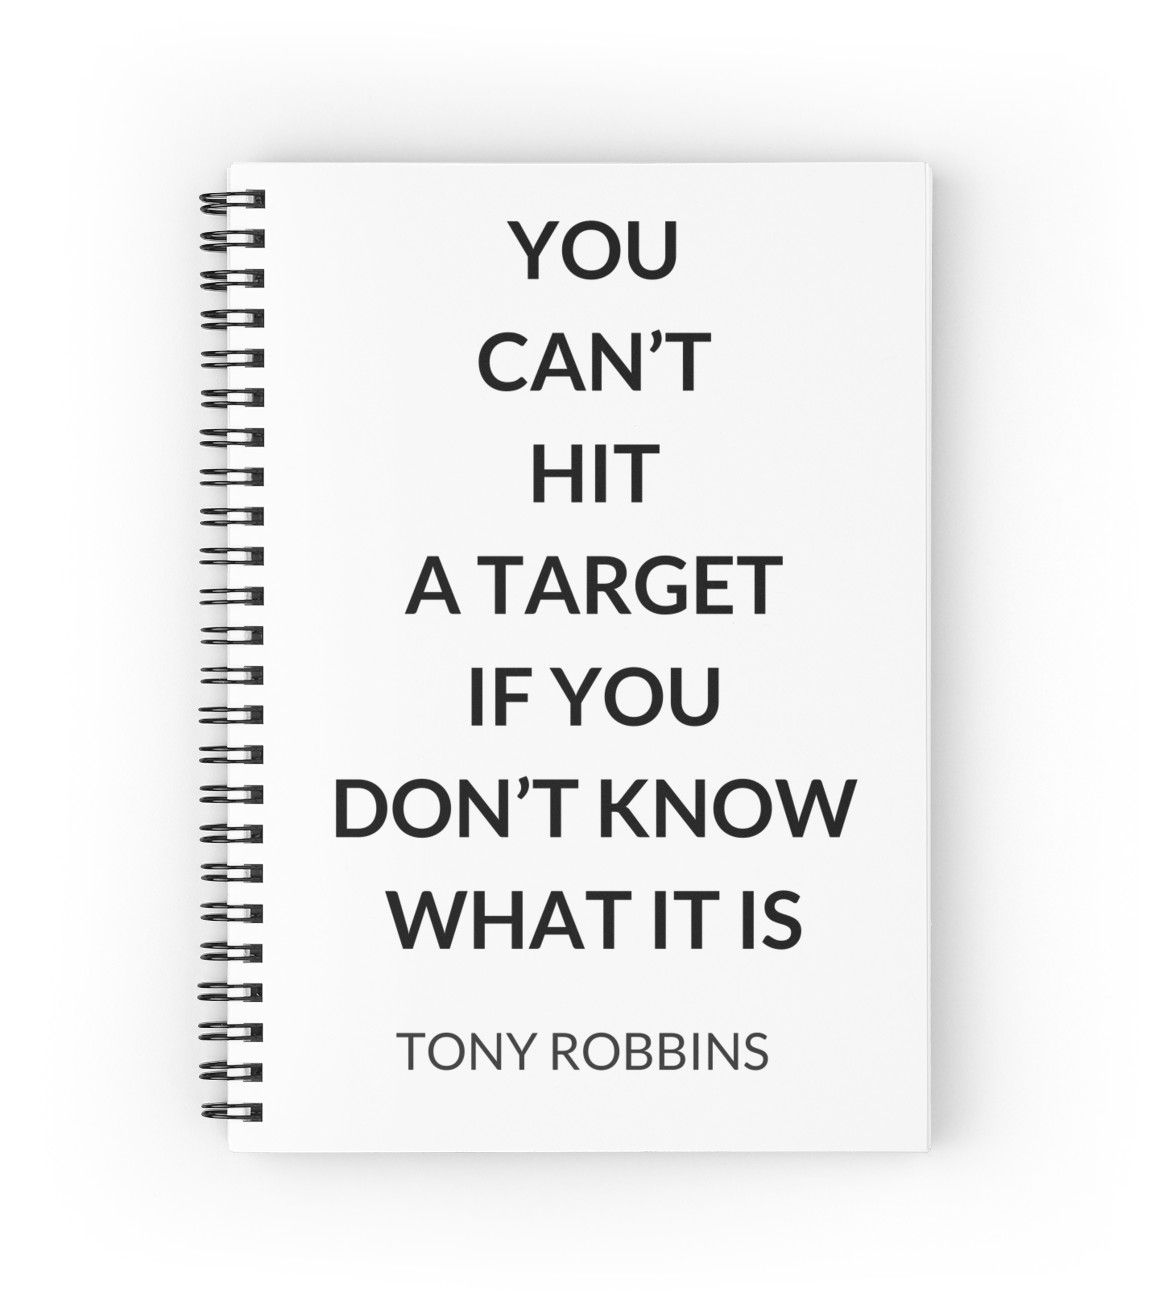 TONY ROBBINS QUOTE: YOU CAN'T HIT A TARGET IF YOU DON'T KNOW